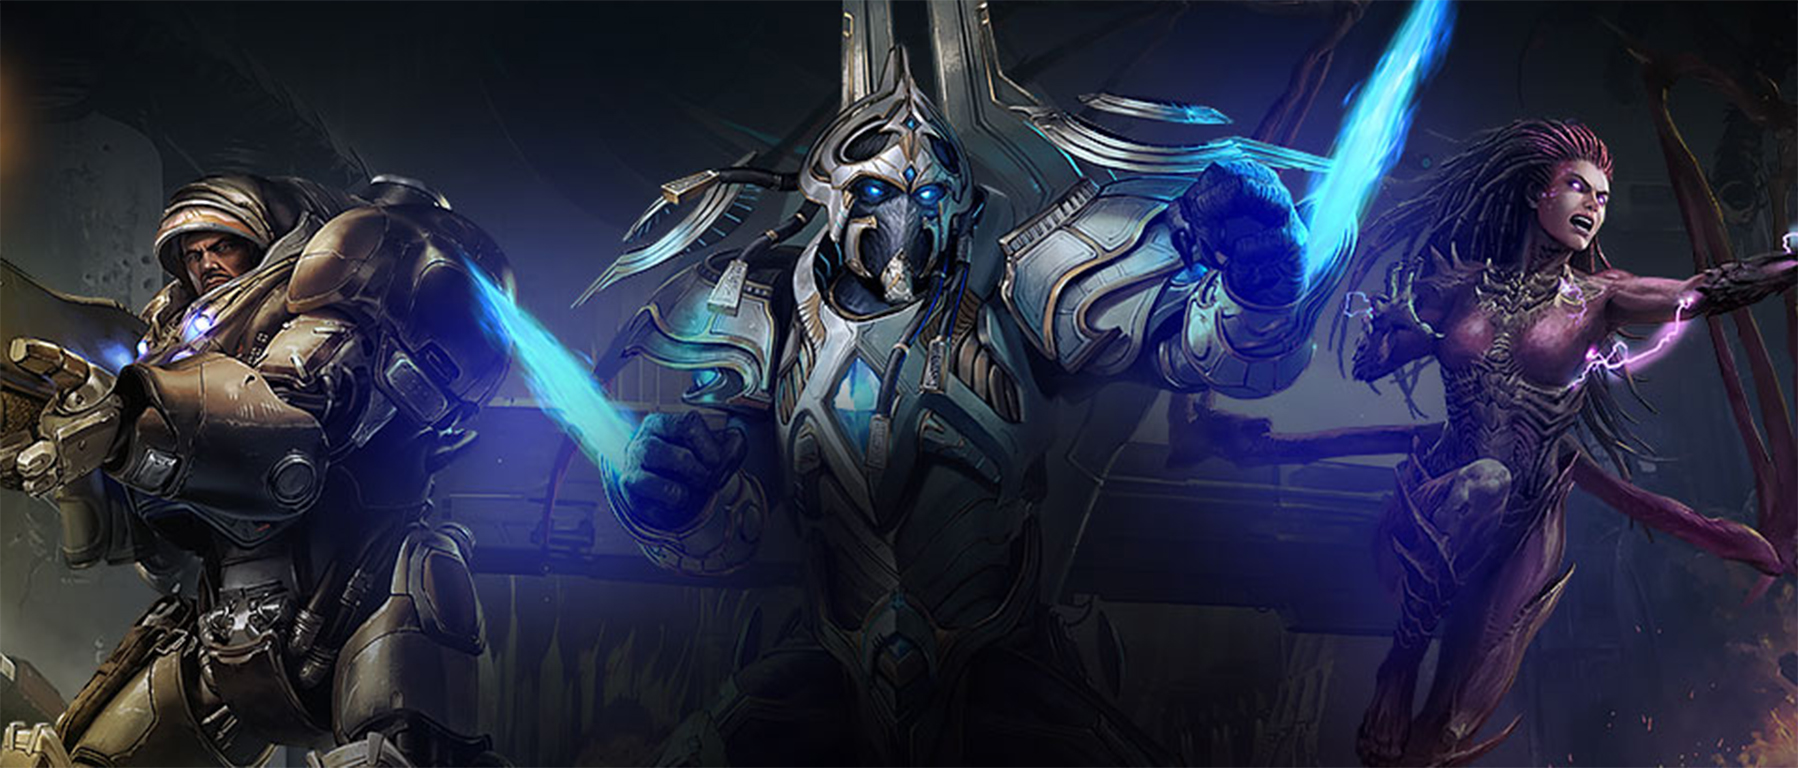 Starcraft 2: Wings of Liberty v2.0 to v2.0.4 Mac Patch (English/US)